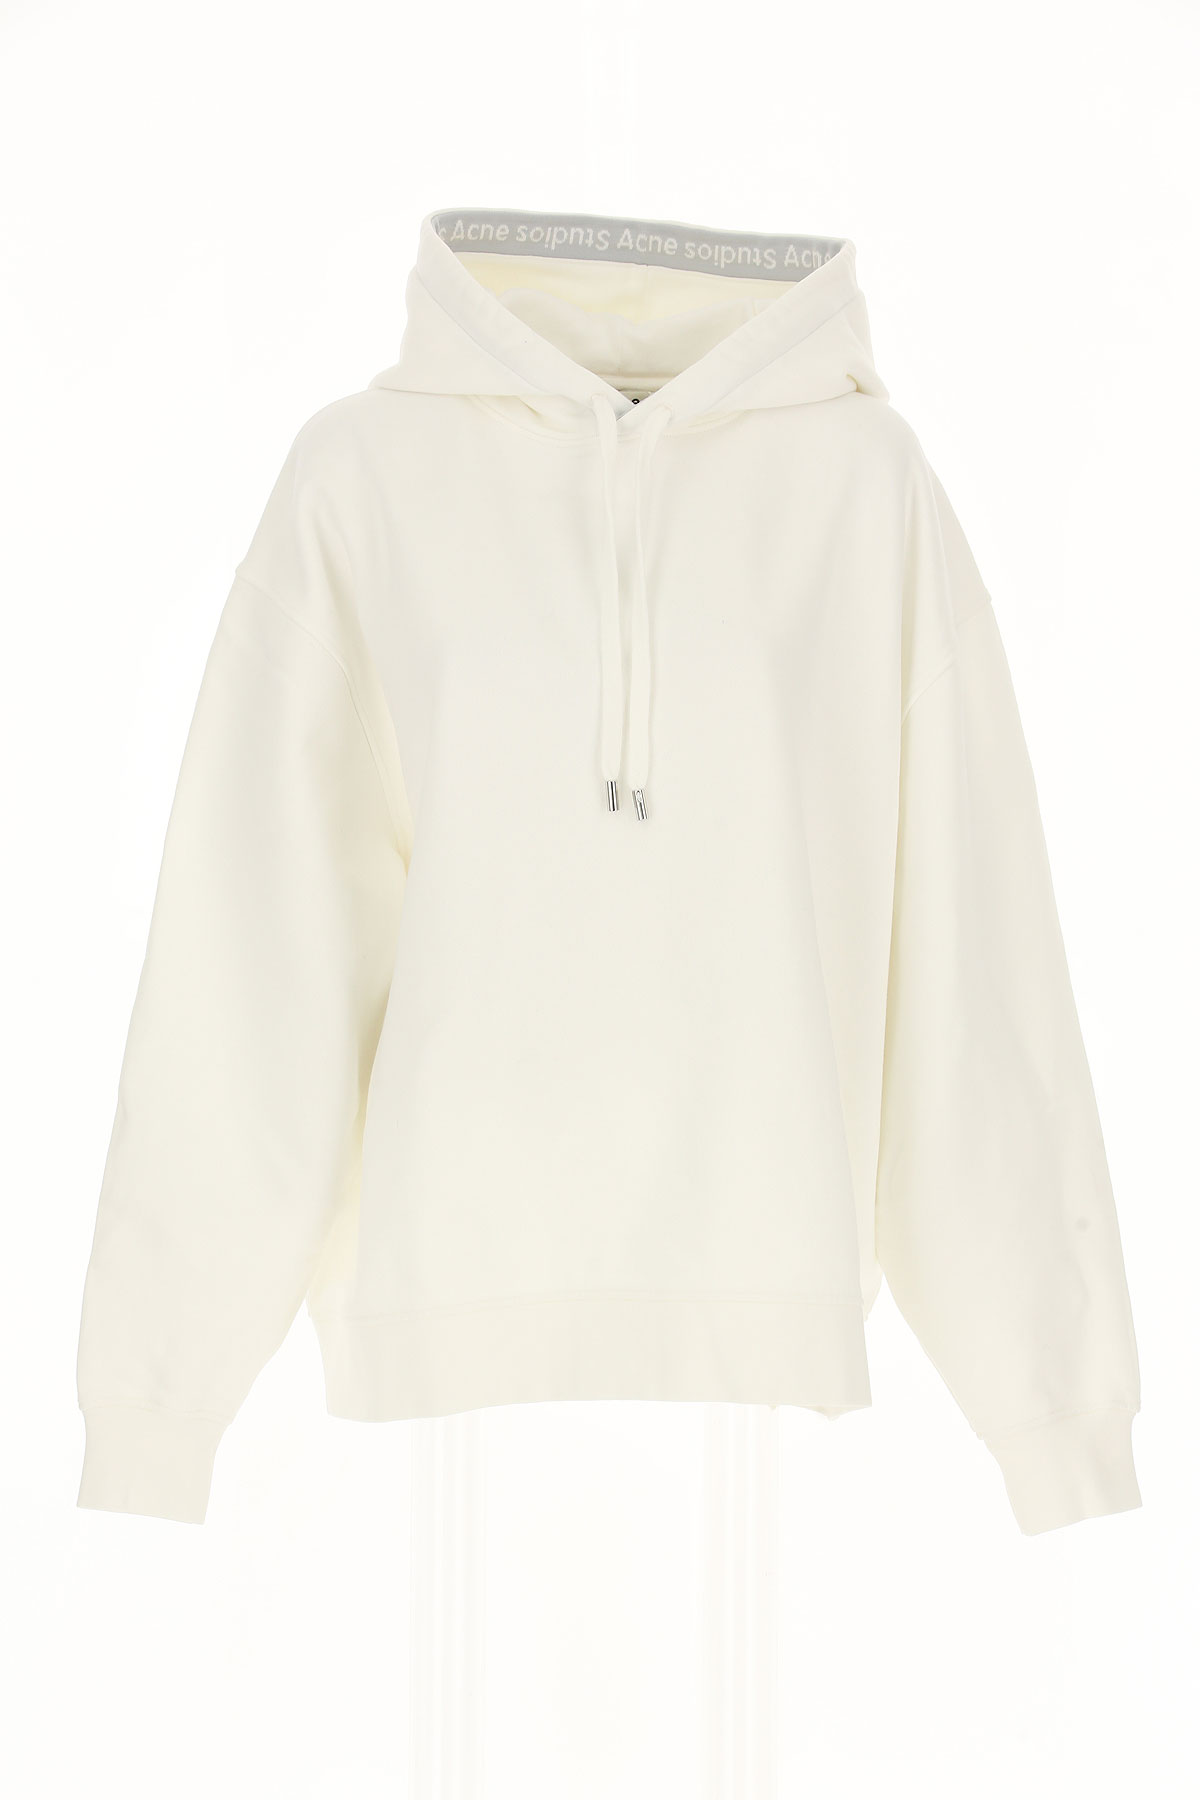 Image of Acne Studios Sweatshirt for Women, White, Cotton, 2017, 10 4 6 8